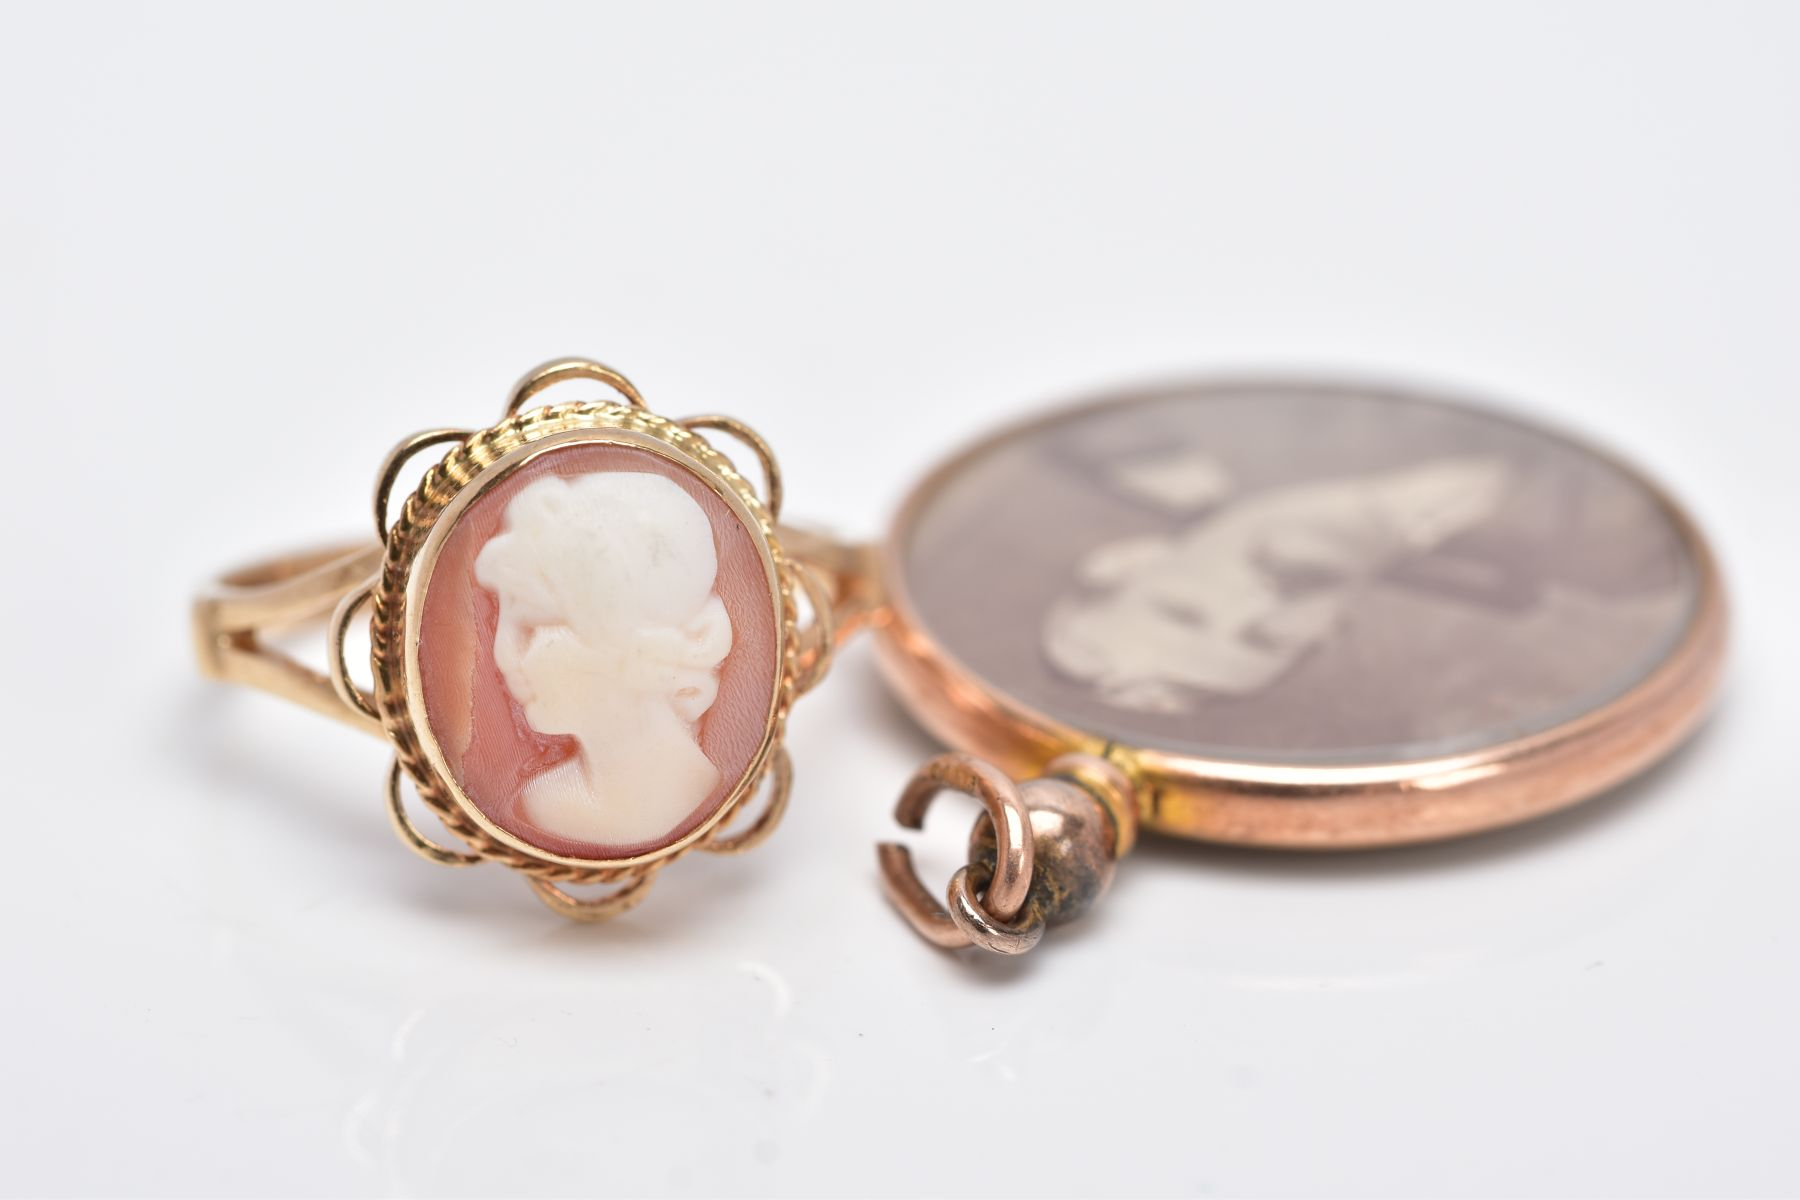 A 9CT GOLD CAMEO RING AND A DOUBLE SIDED PHOTOGRAPH, of an oval form, depicting a lady in profile, - Image 4 of 4